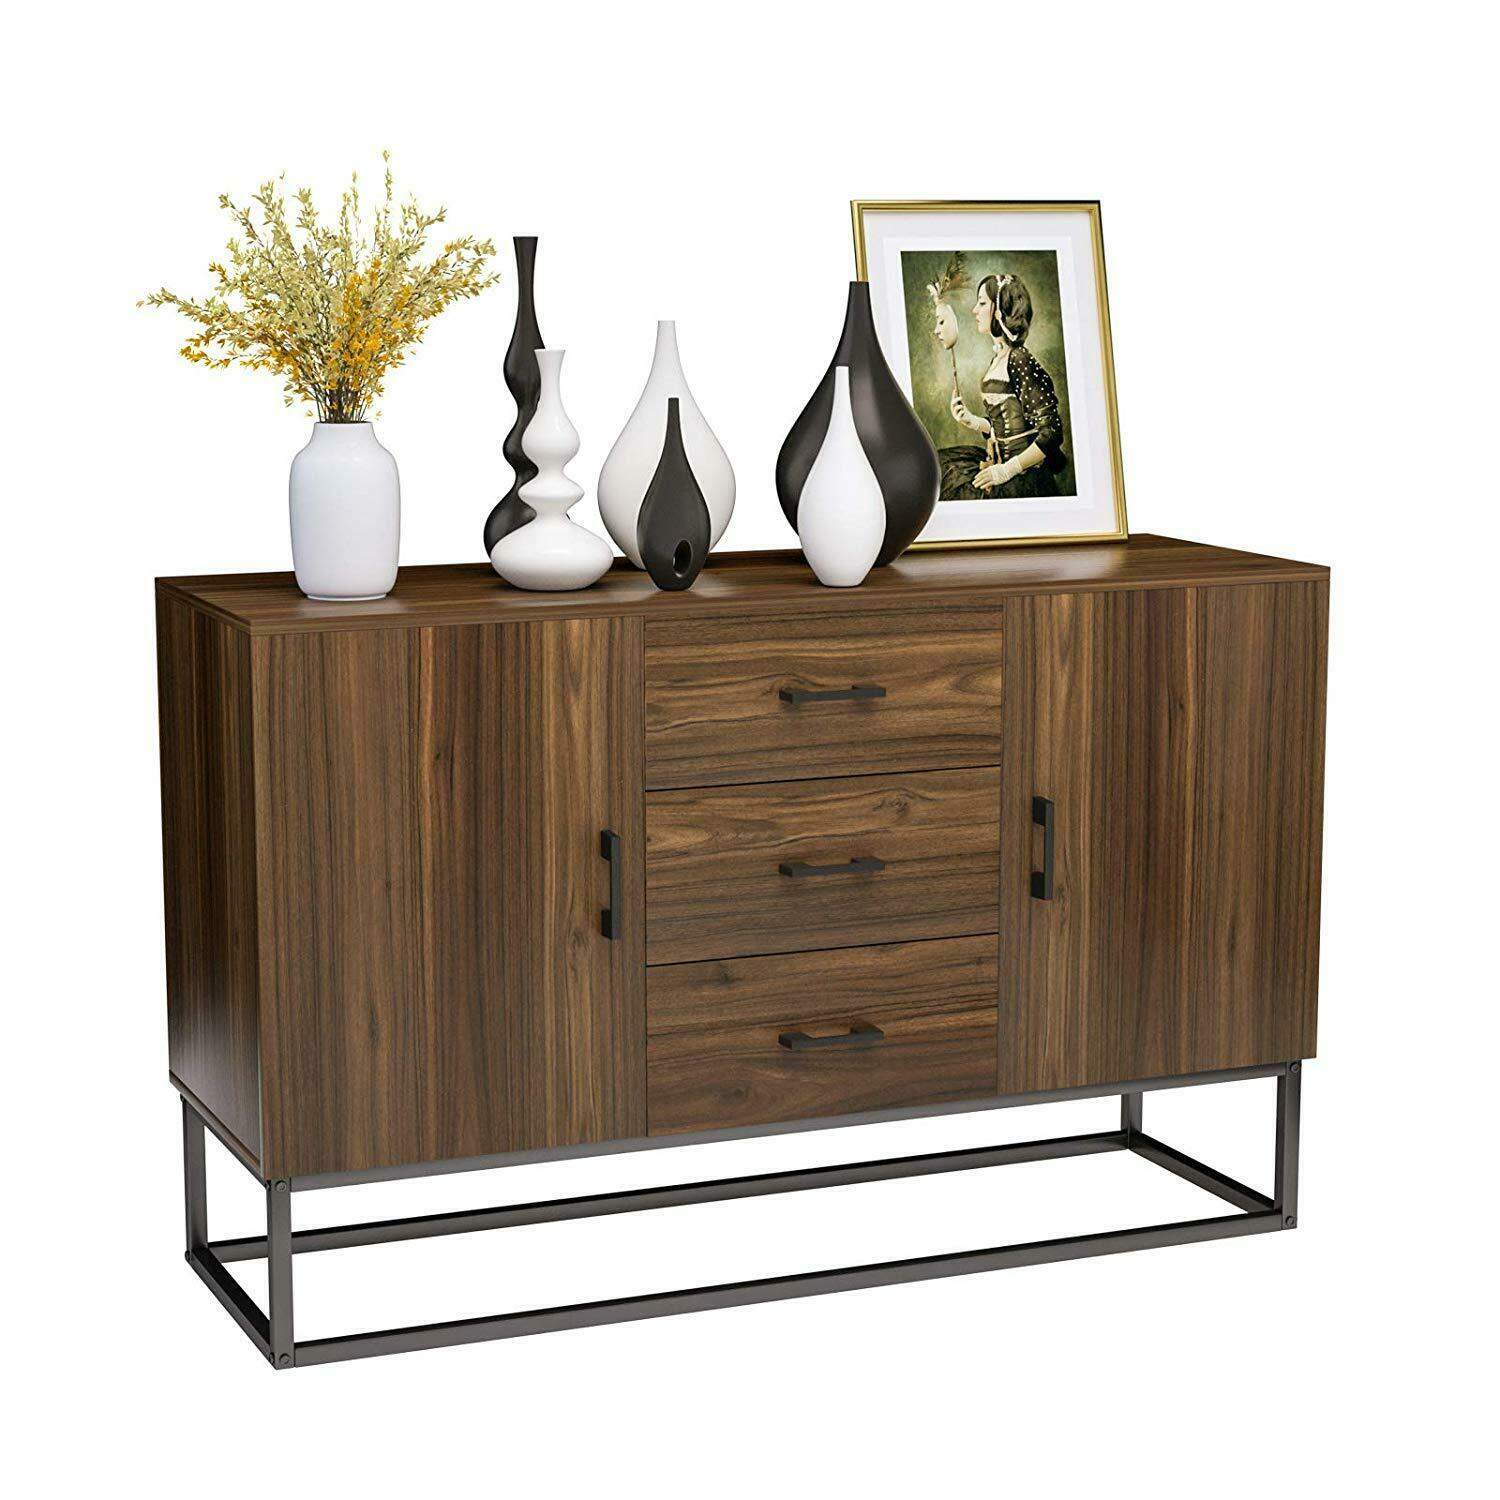 Wooden Sideboard Buffet Storage Cabinet W 3 Drawers 2 Doors Console Table Desk For Sale Online Ebay